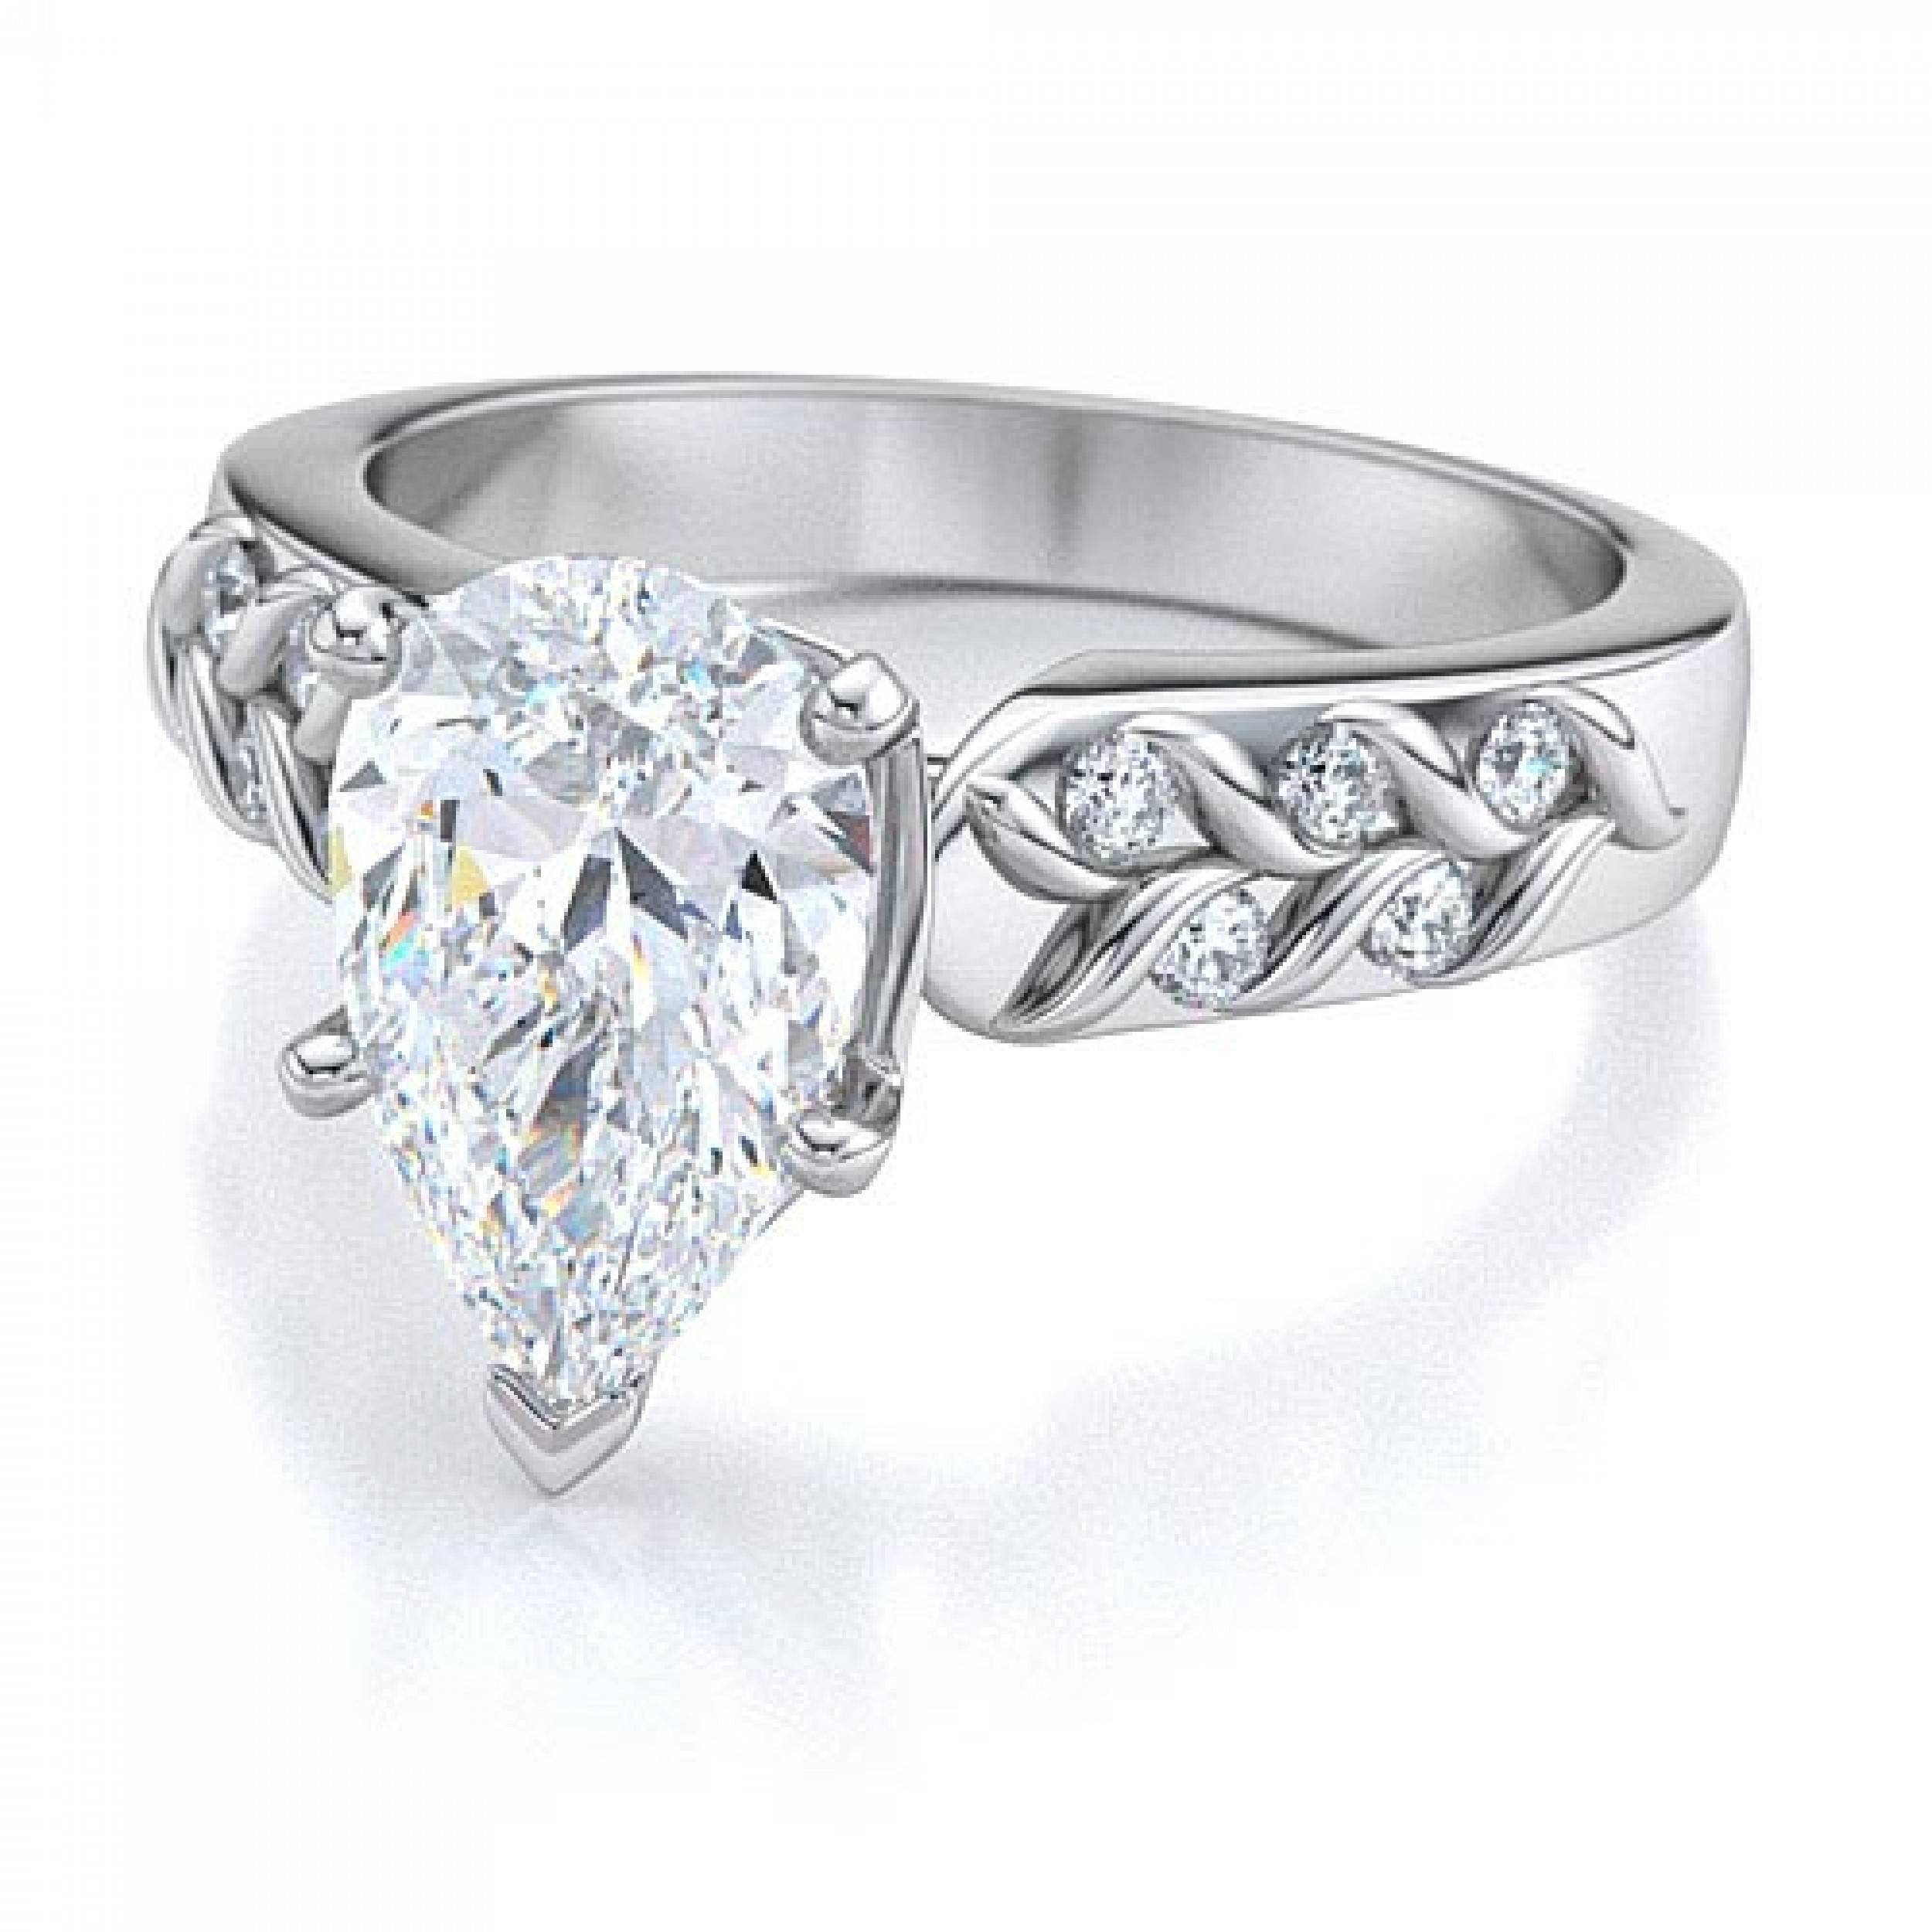 jewellery engagement lovely setting row wedding ritani diamond in ring pave settings of three